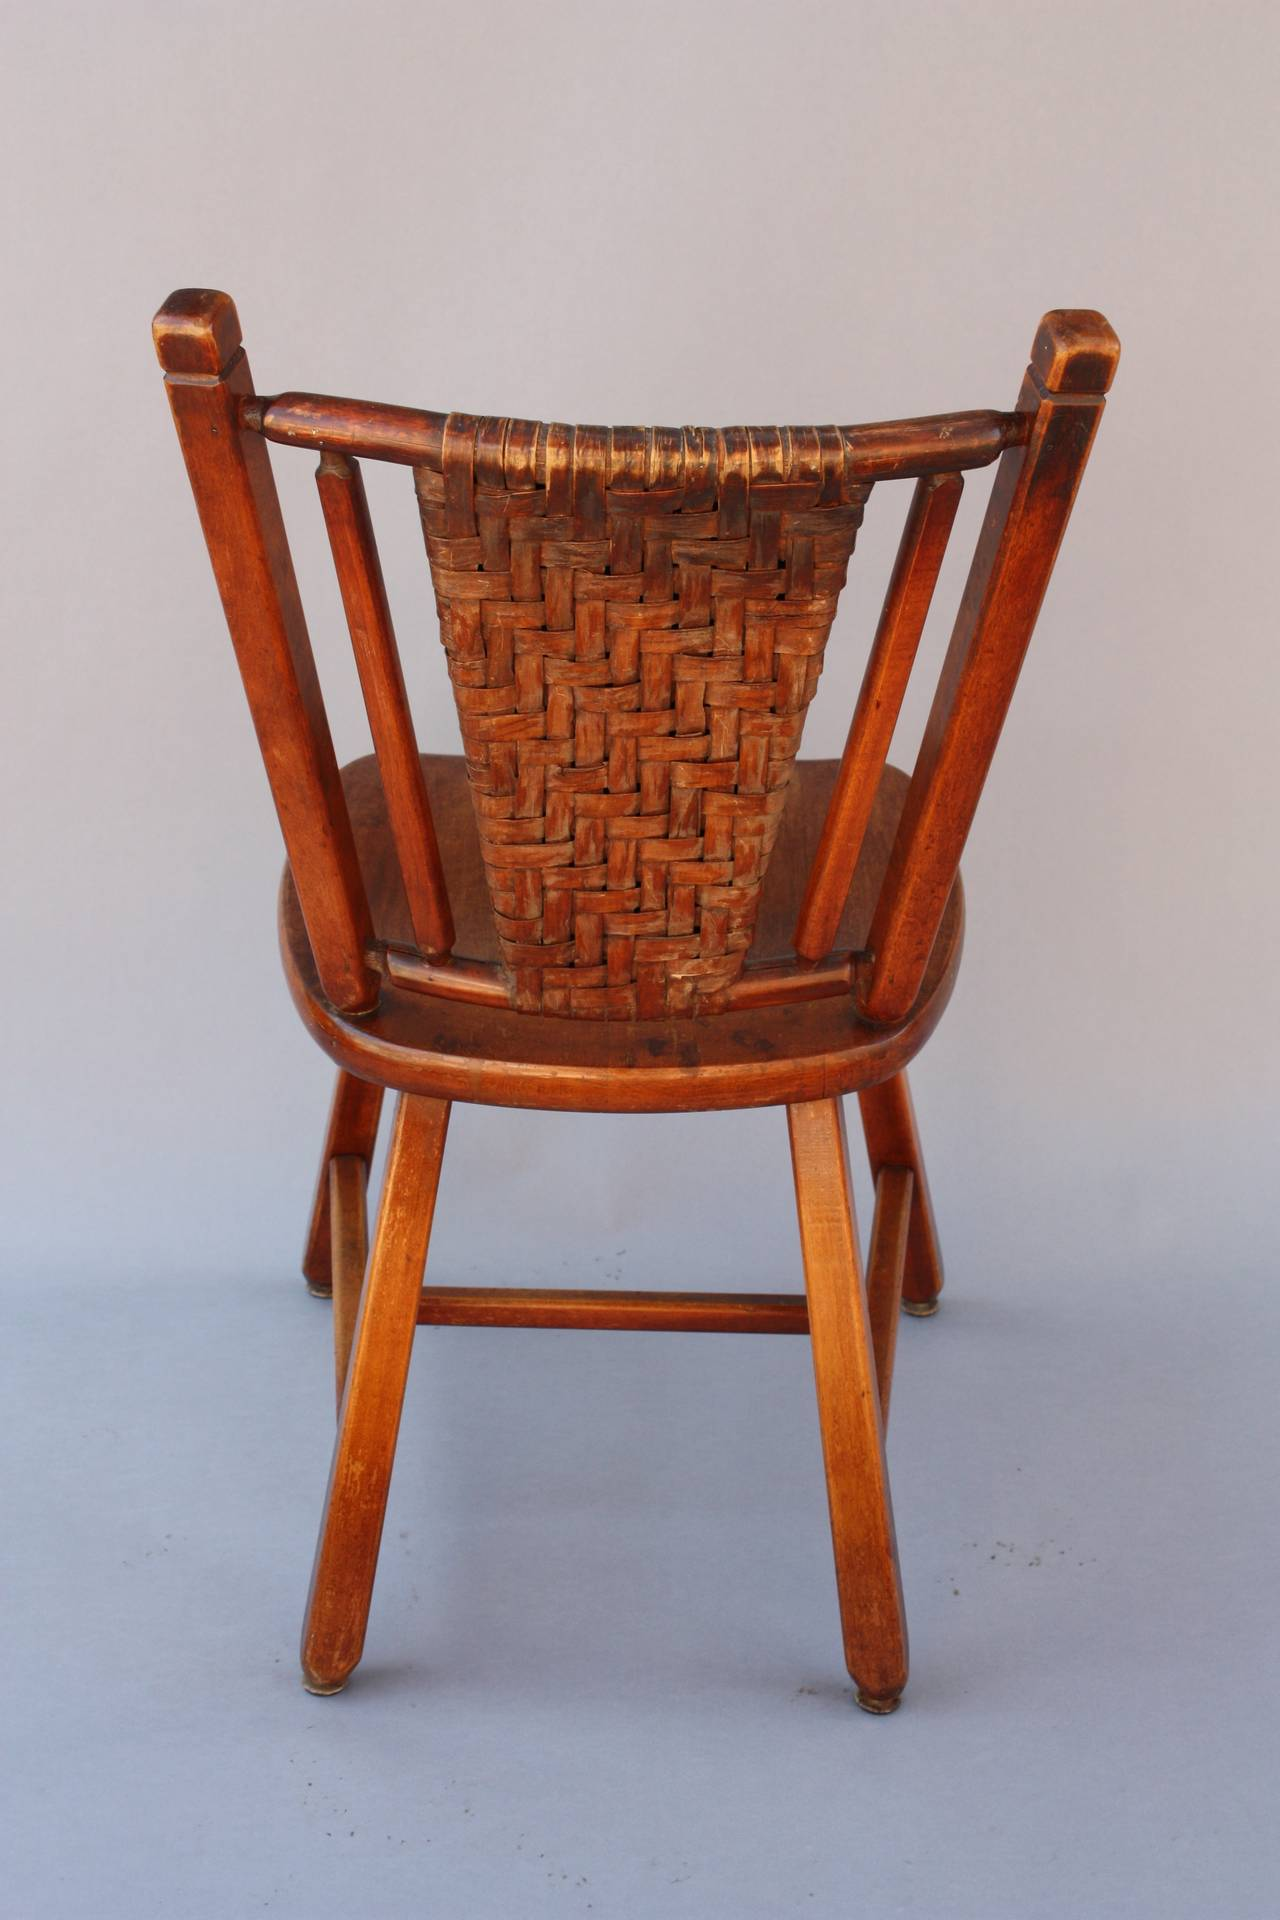 This Old Hickory Chair is no longer available.